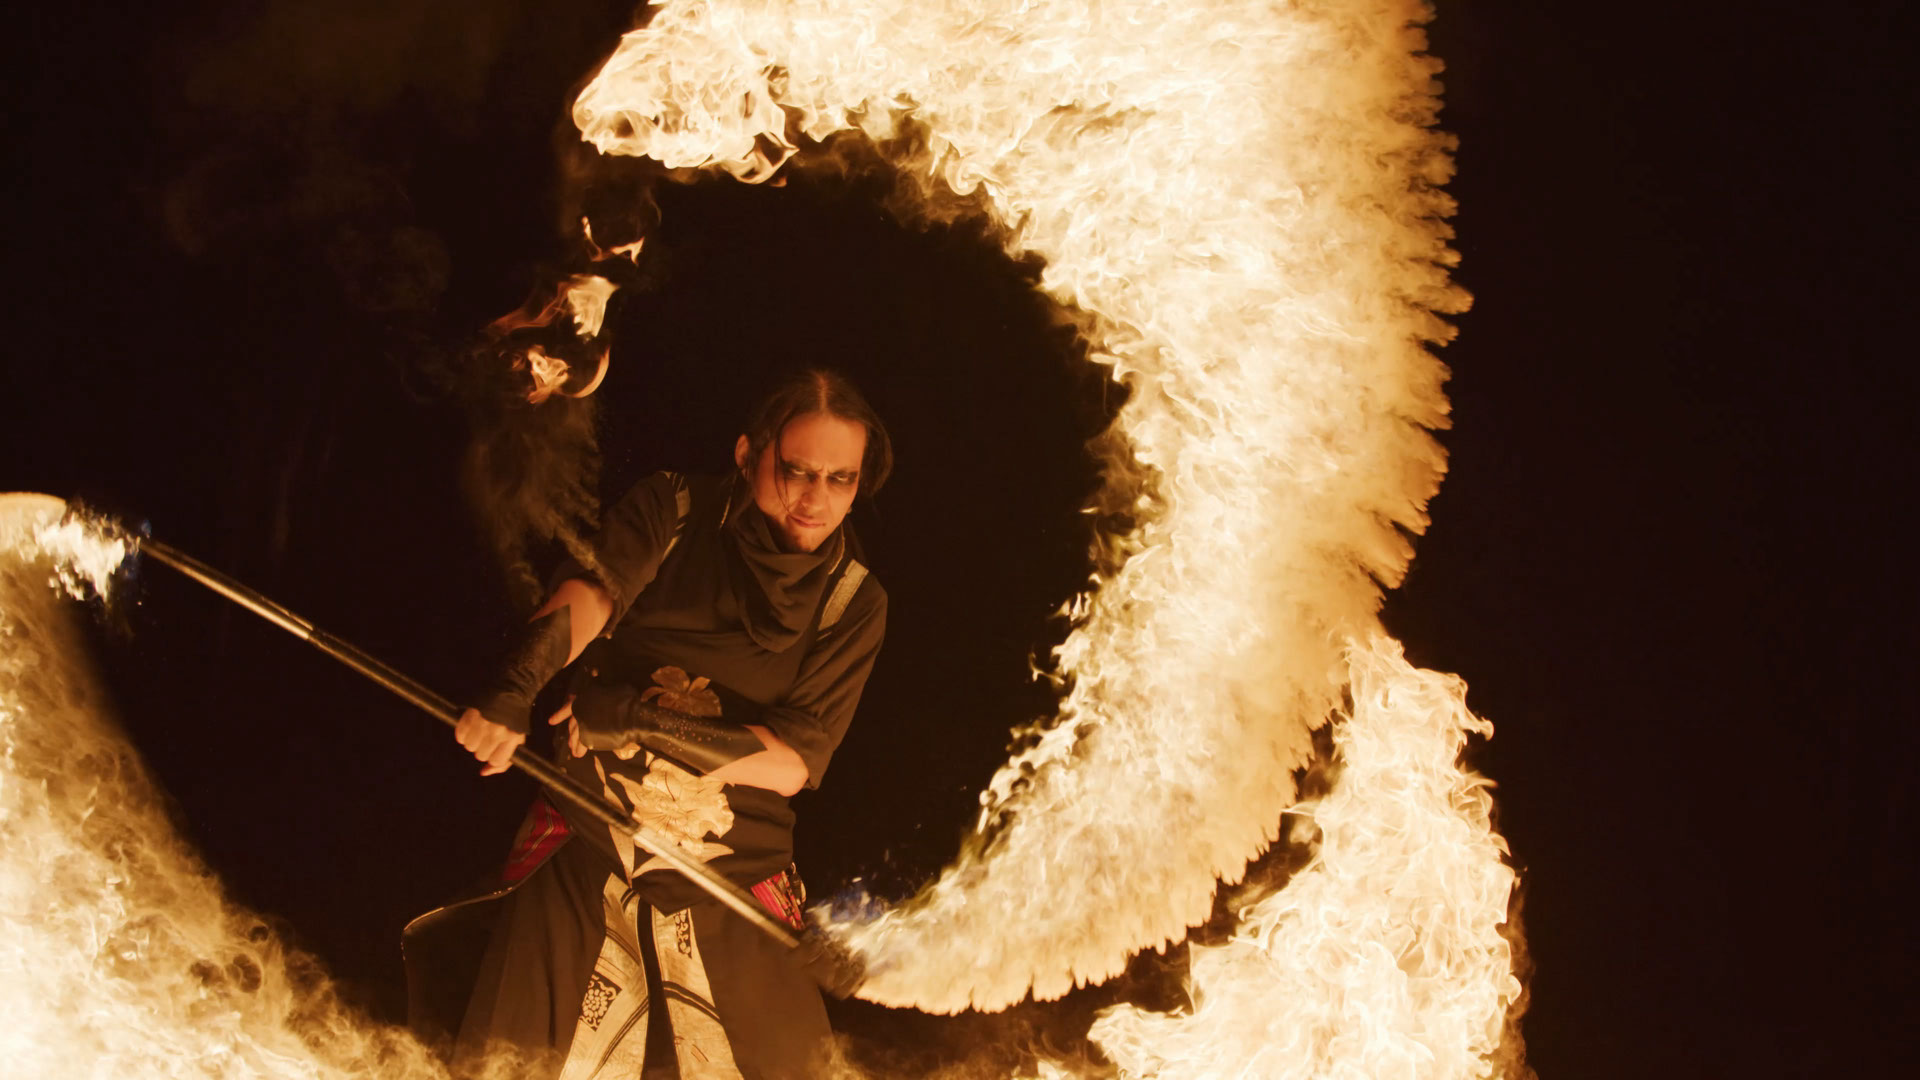 Fire Cinematography